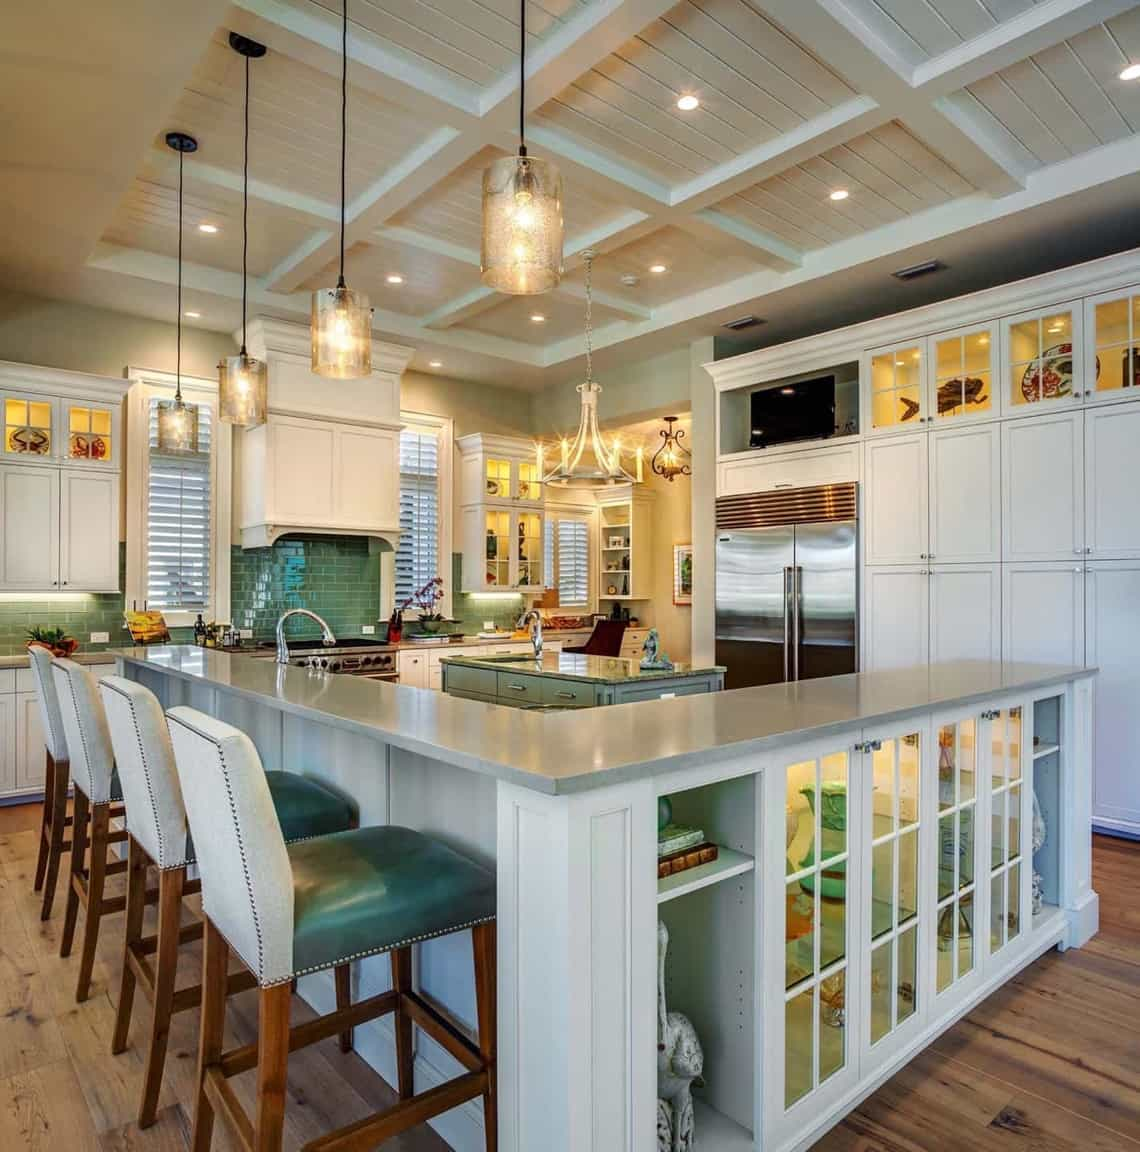 coastal kitchen with l shaped breakfast bar and teal accents  - featured image of coastal kitchen with l shaped breakfast bar and tealaccents